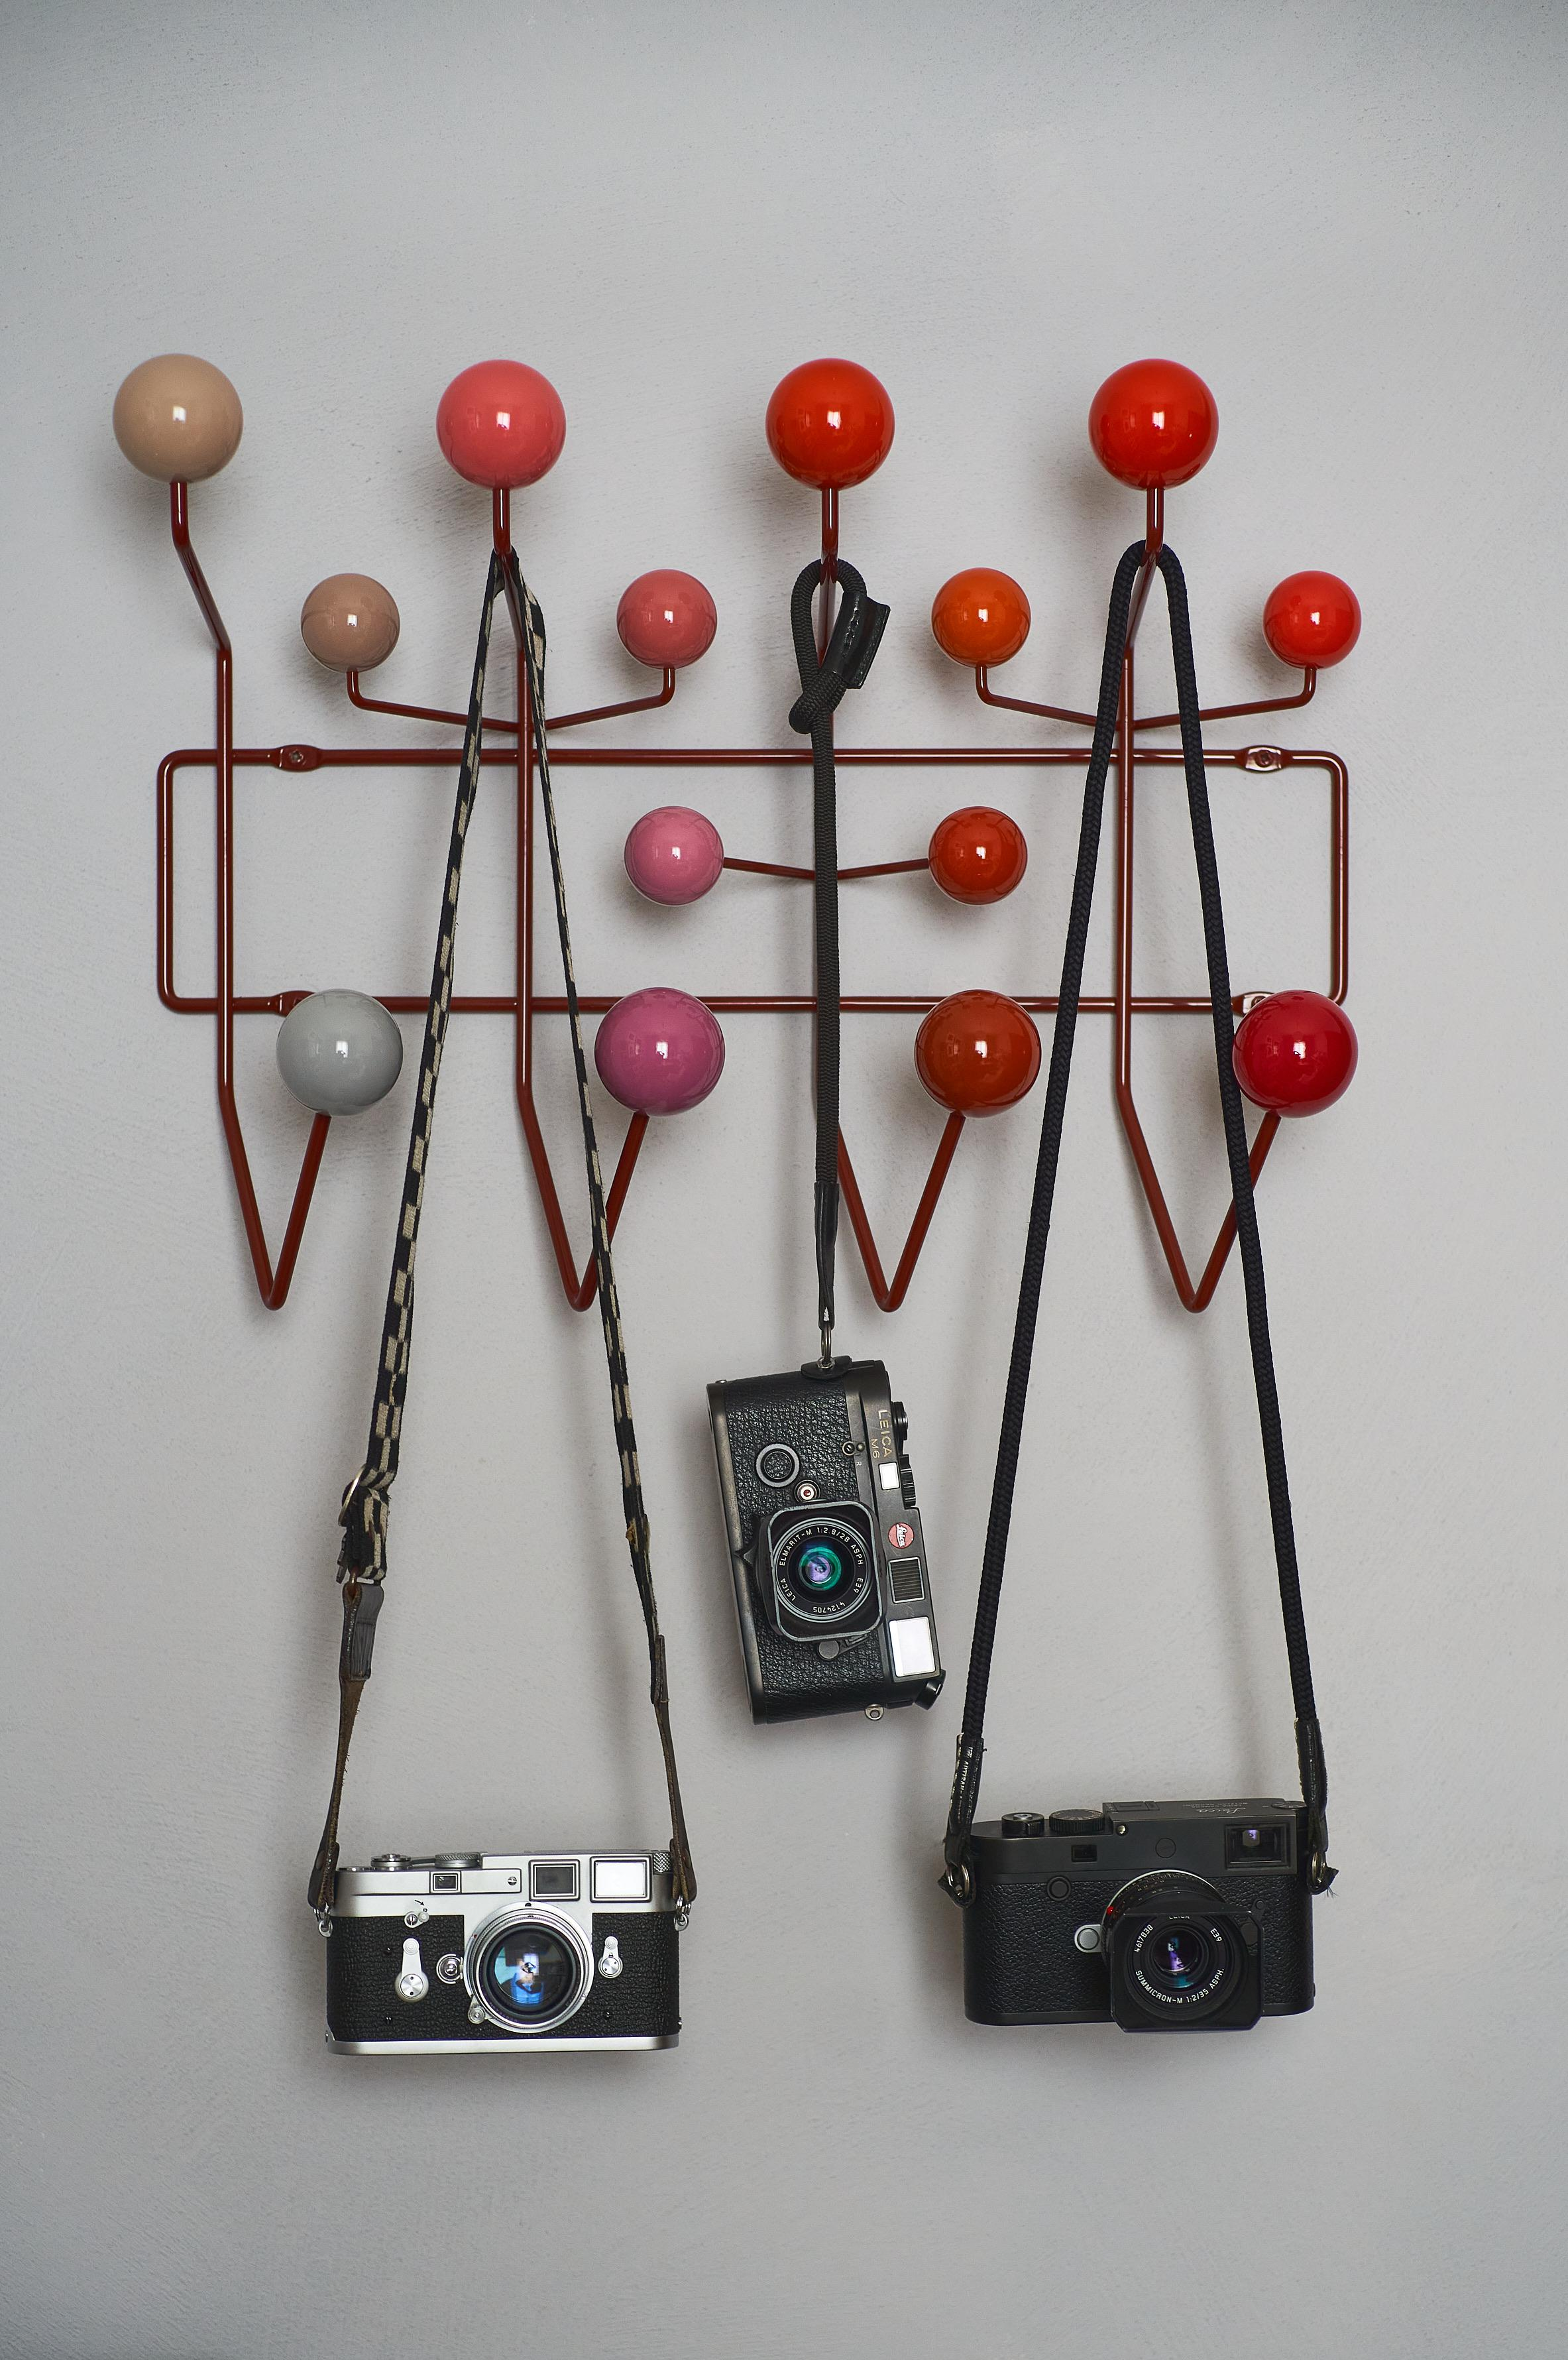 The Hang It All By Eames Was Designed In The Same Year As The First Leica M Fitting That It Should Be Used To Hang Cameras From The Era The Original Was